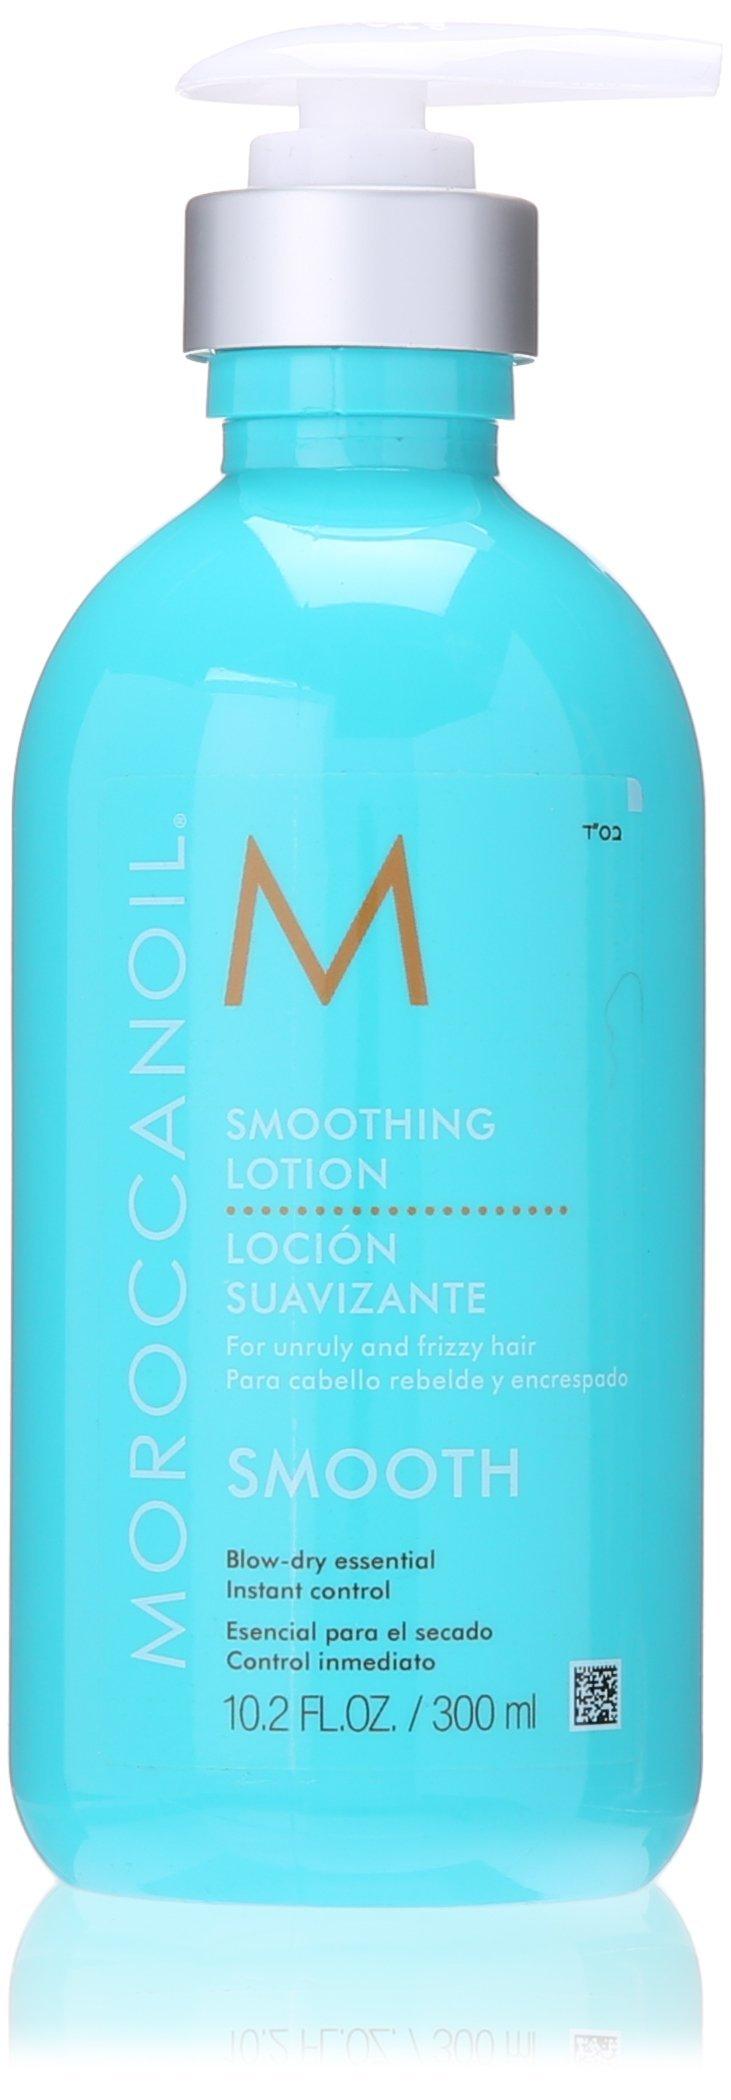 Moroccan Oil Smoothing Lotion, 10.2 Fluid Ounce by MOROCCANOIL